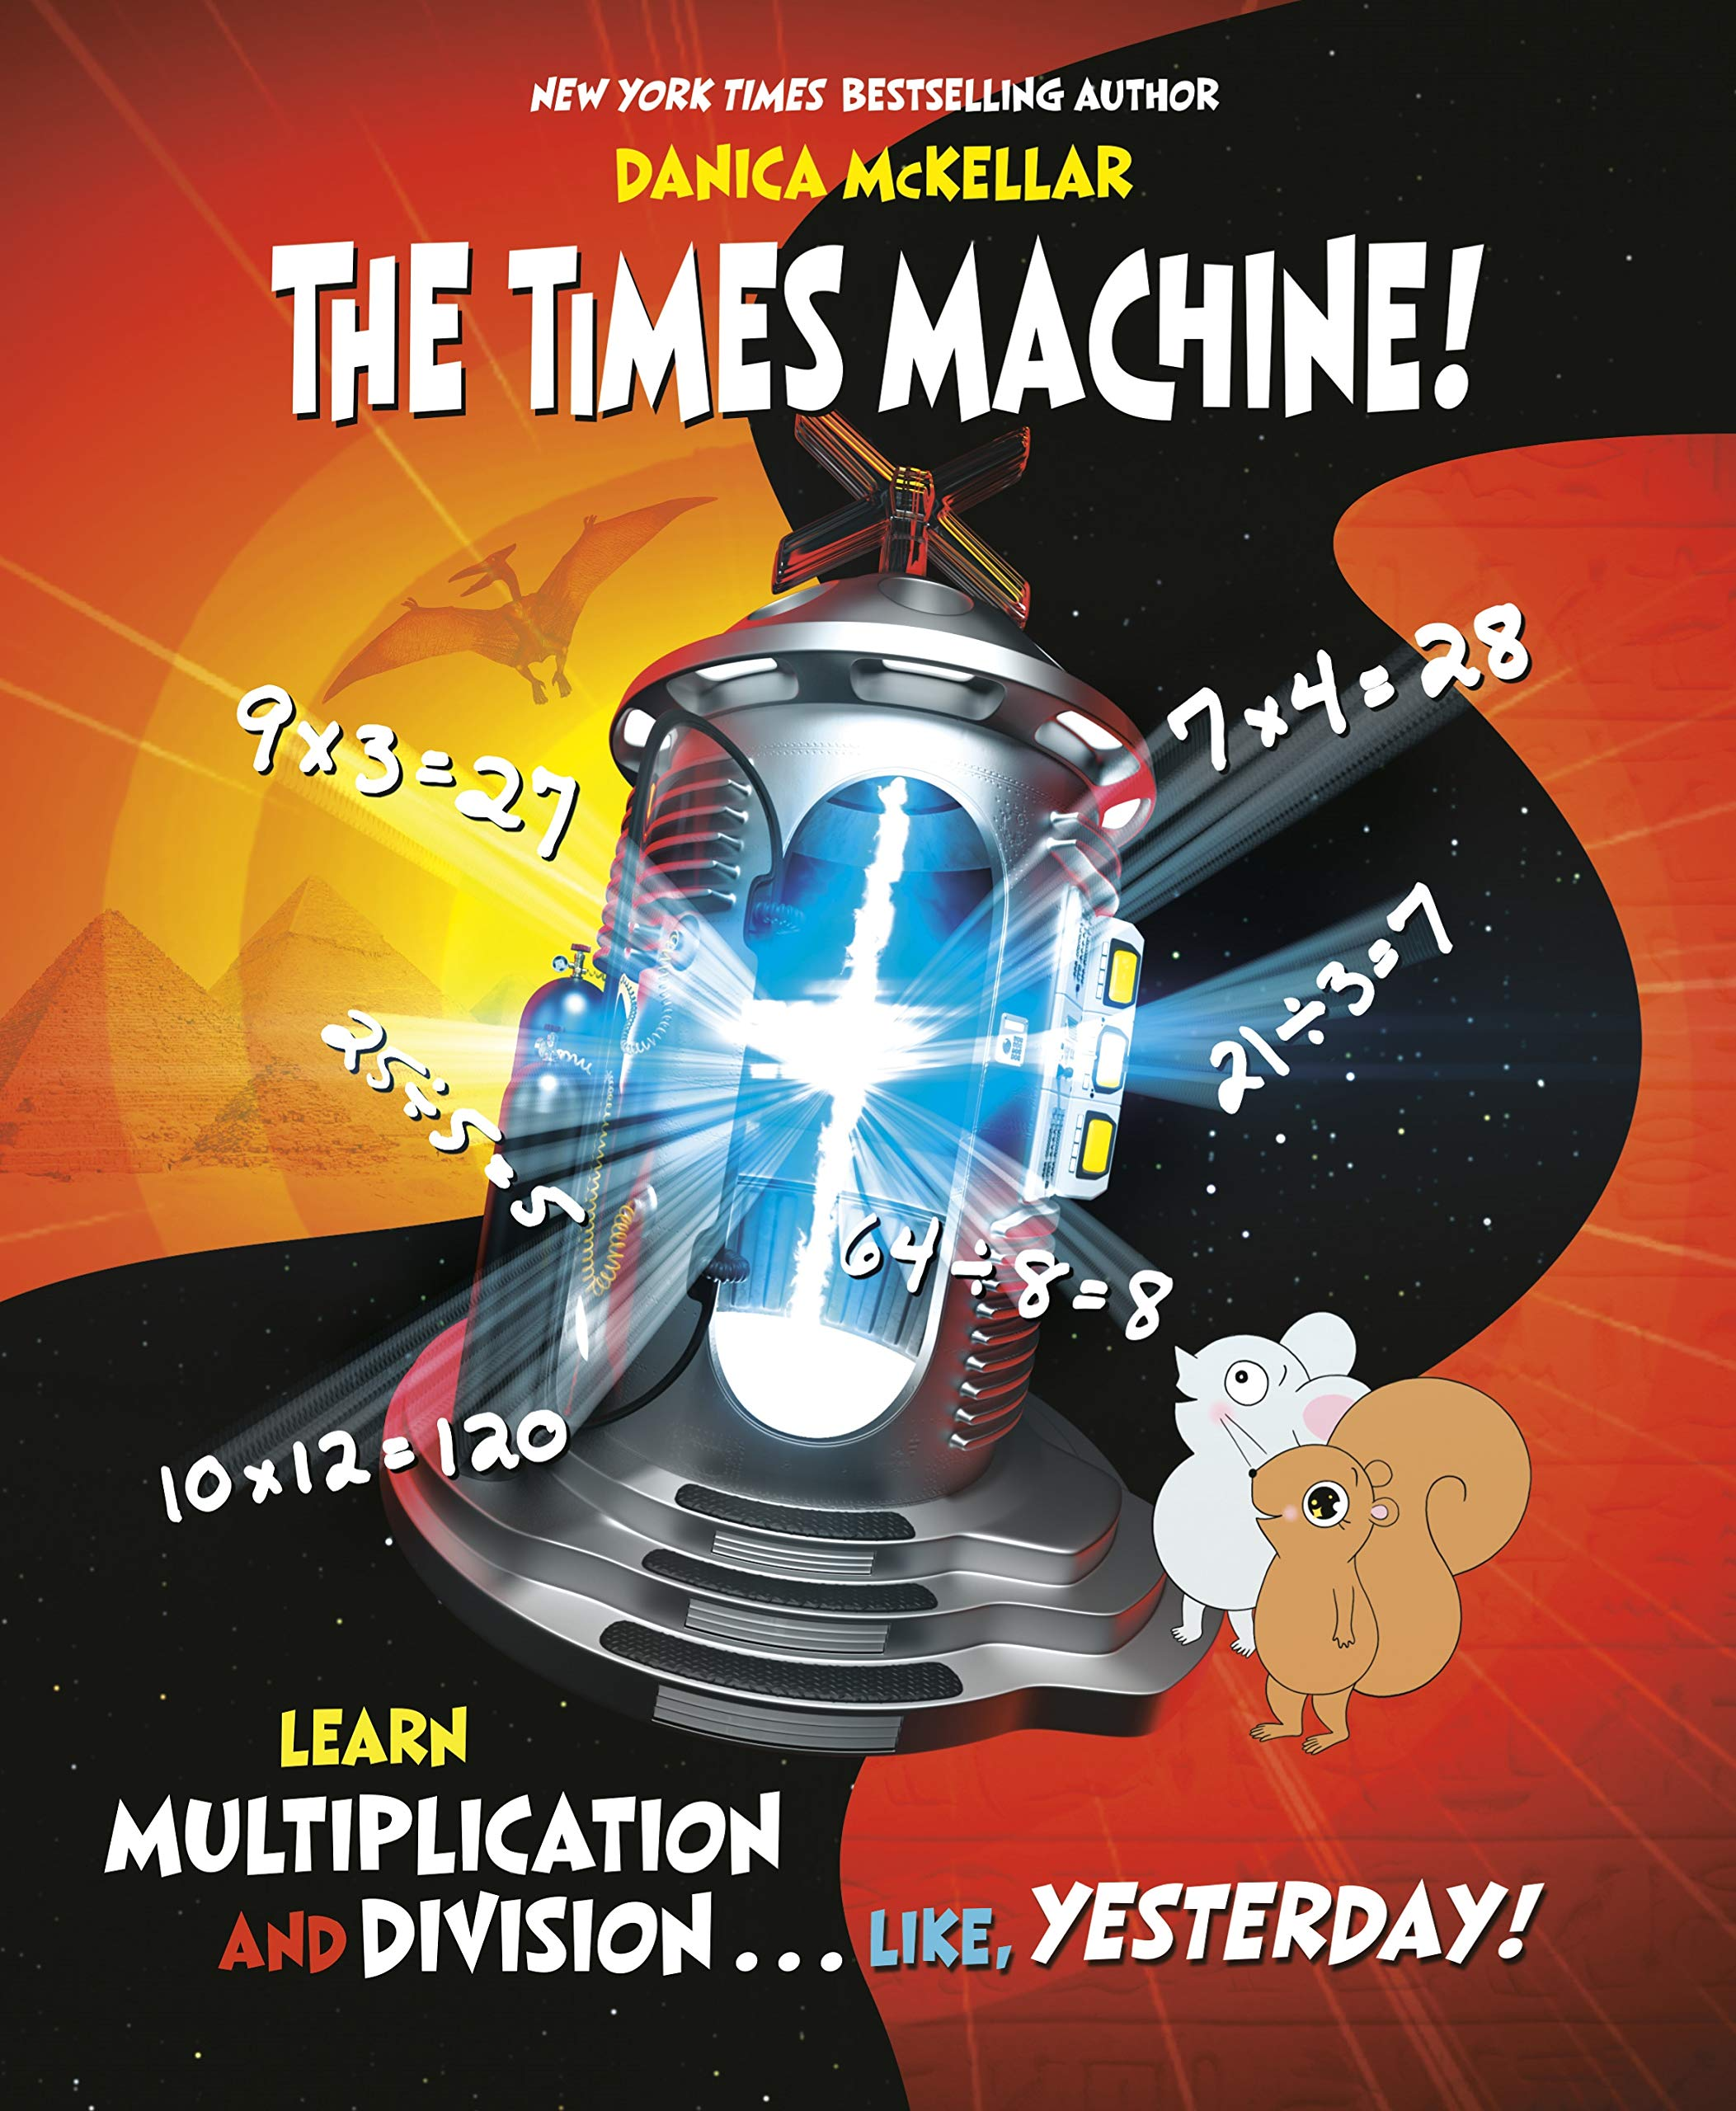 The Times Machine! Learn Multiplication and Division...like, Yesterday!